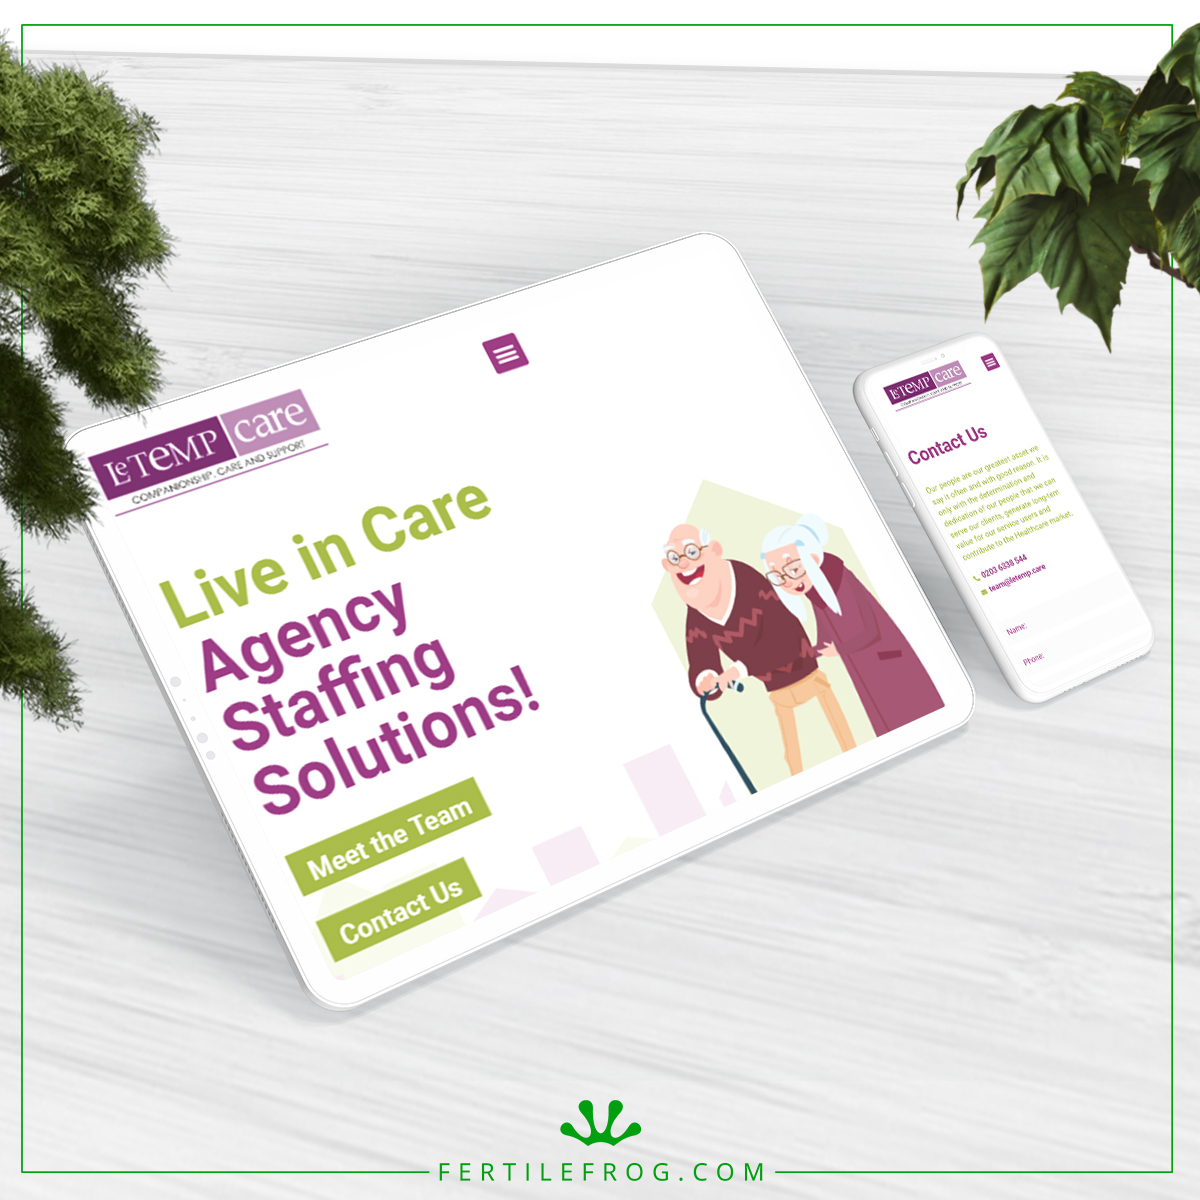 Le Temp Care Agency Website Build tablet and phone